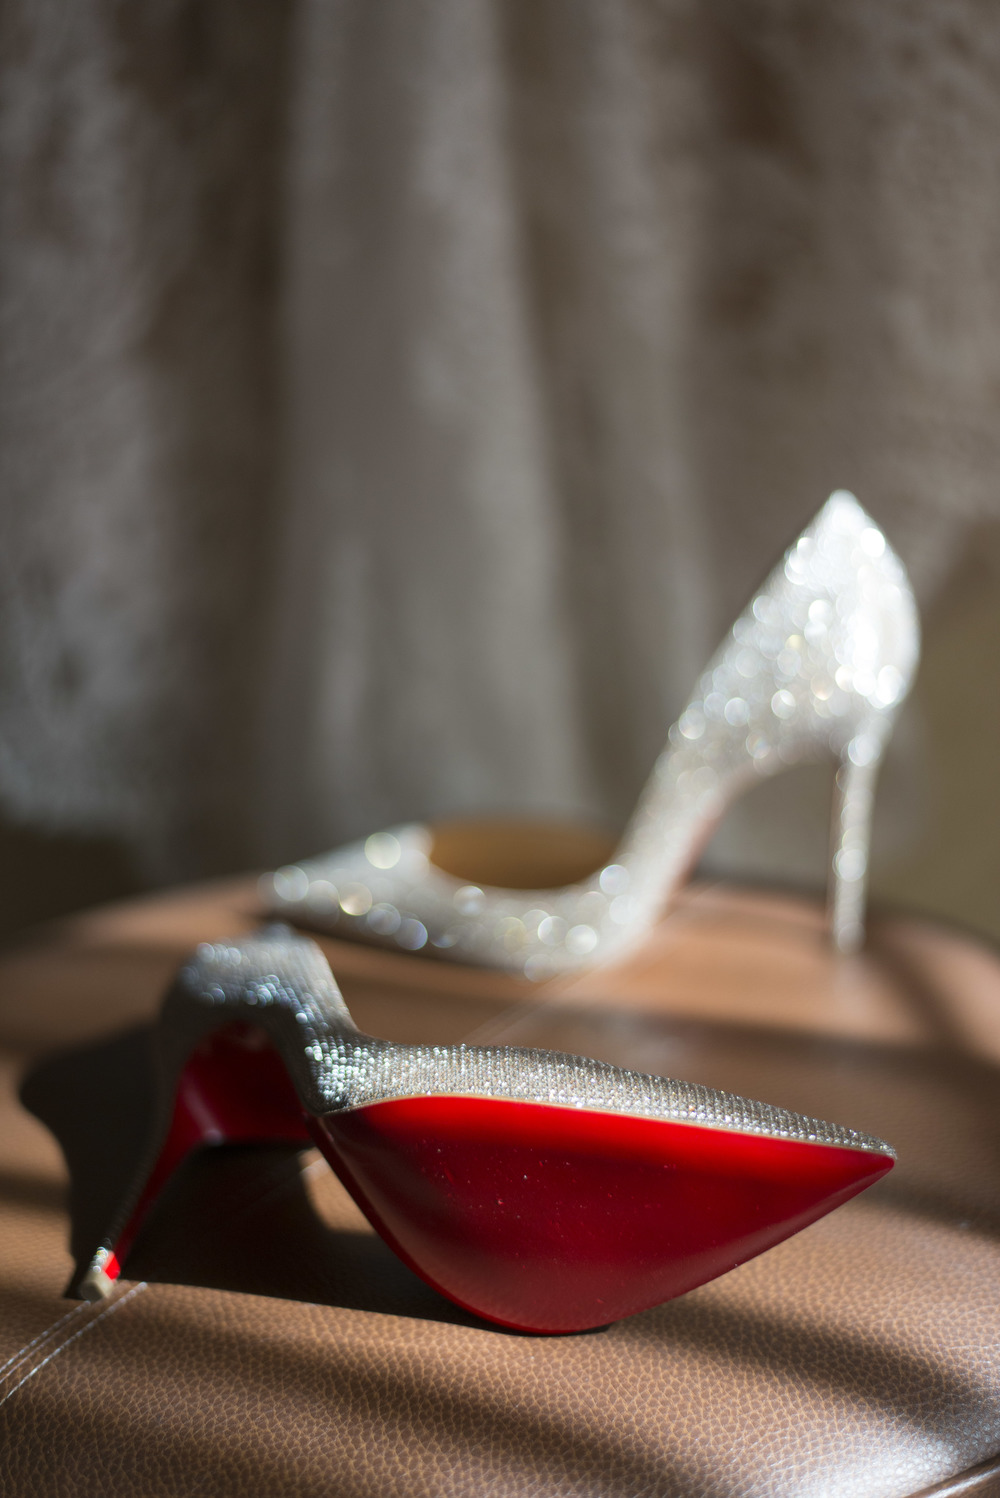 Sexy Red Bottom Wedding Shoes.     Vendor Credits: Las Vegas Wedding Planner:  Andrea Eppolito Events  |  Photography:  Altf Photography  |  Videography: Something New Films  |  Shoes:  Christian Louboutin